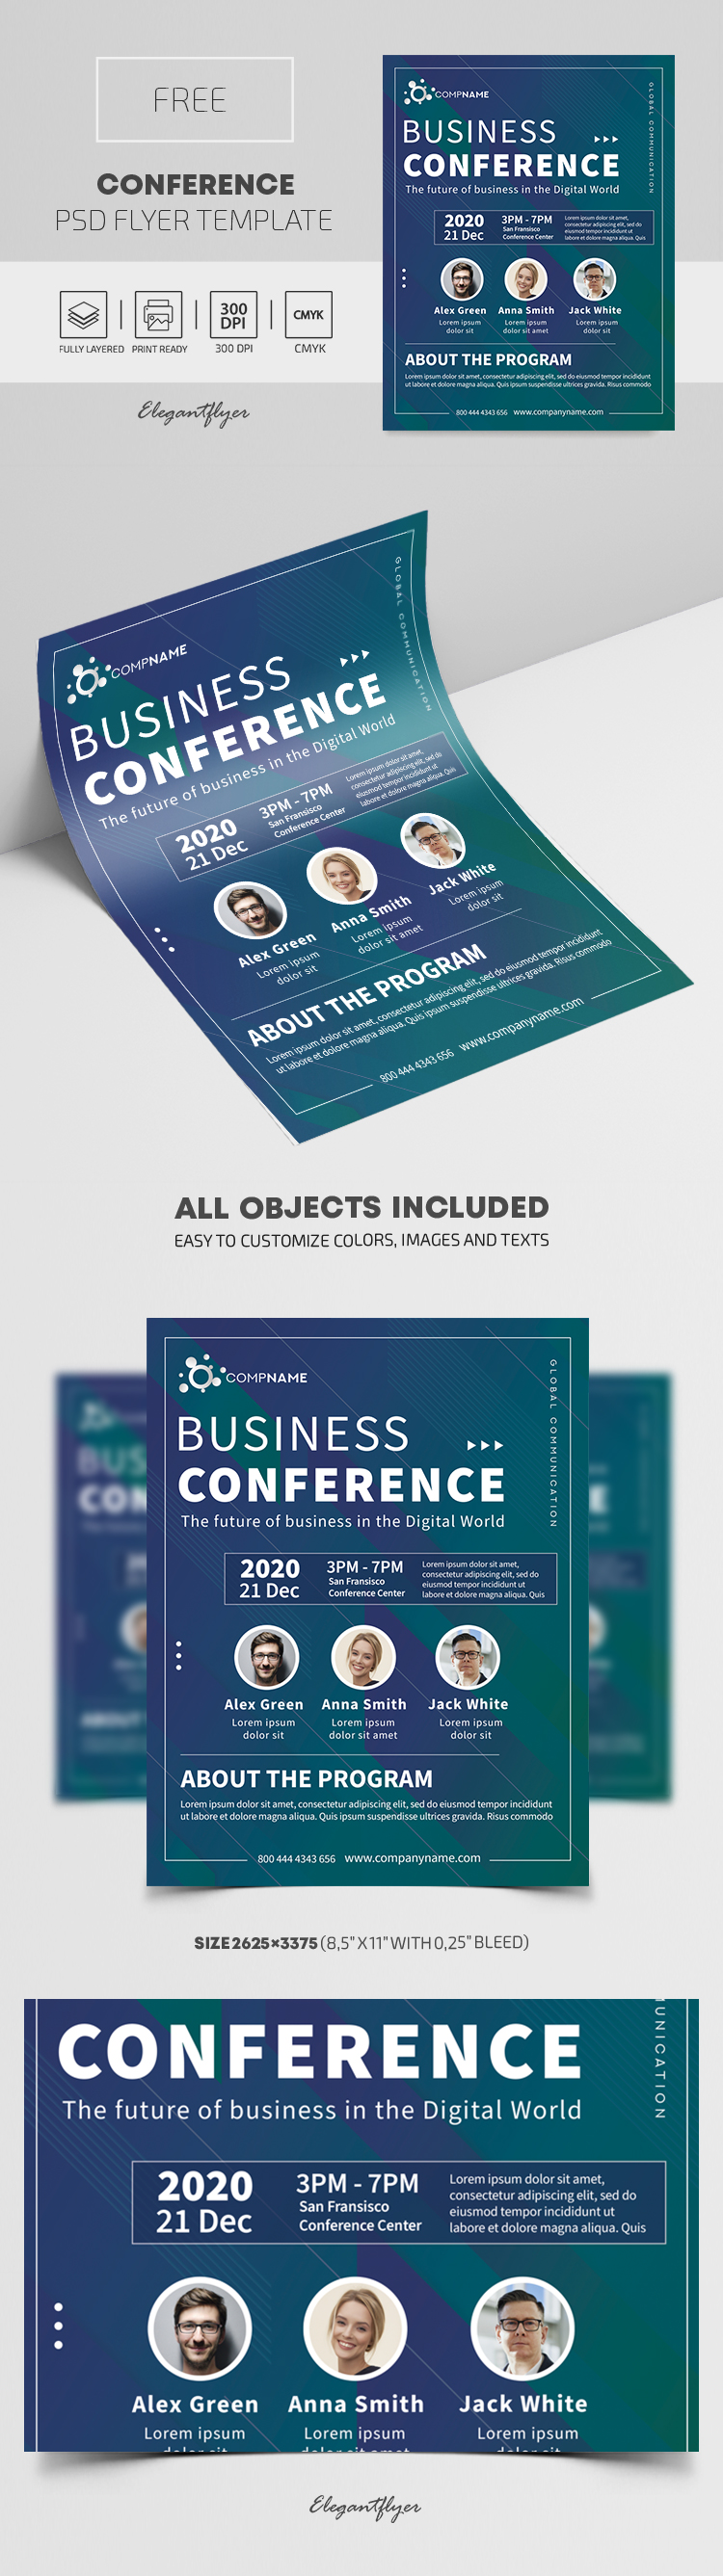 Conference – Free PSD Flyer Template